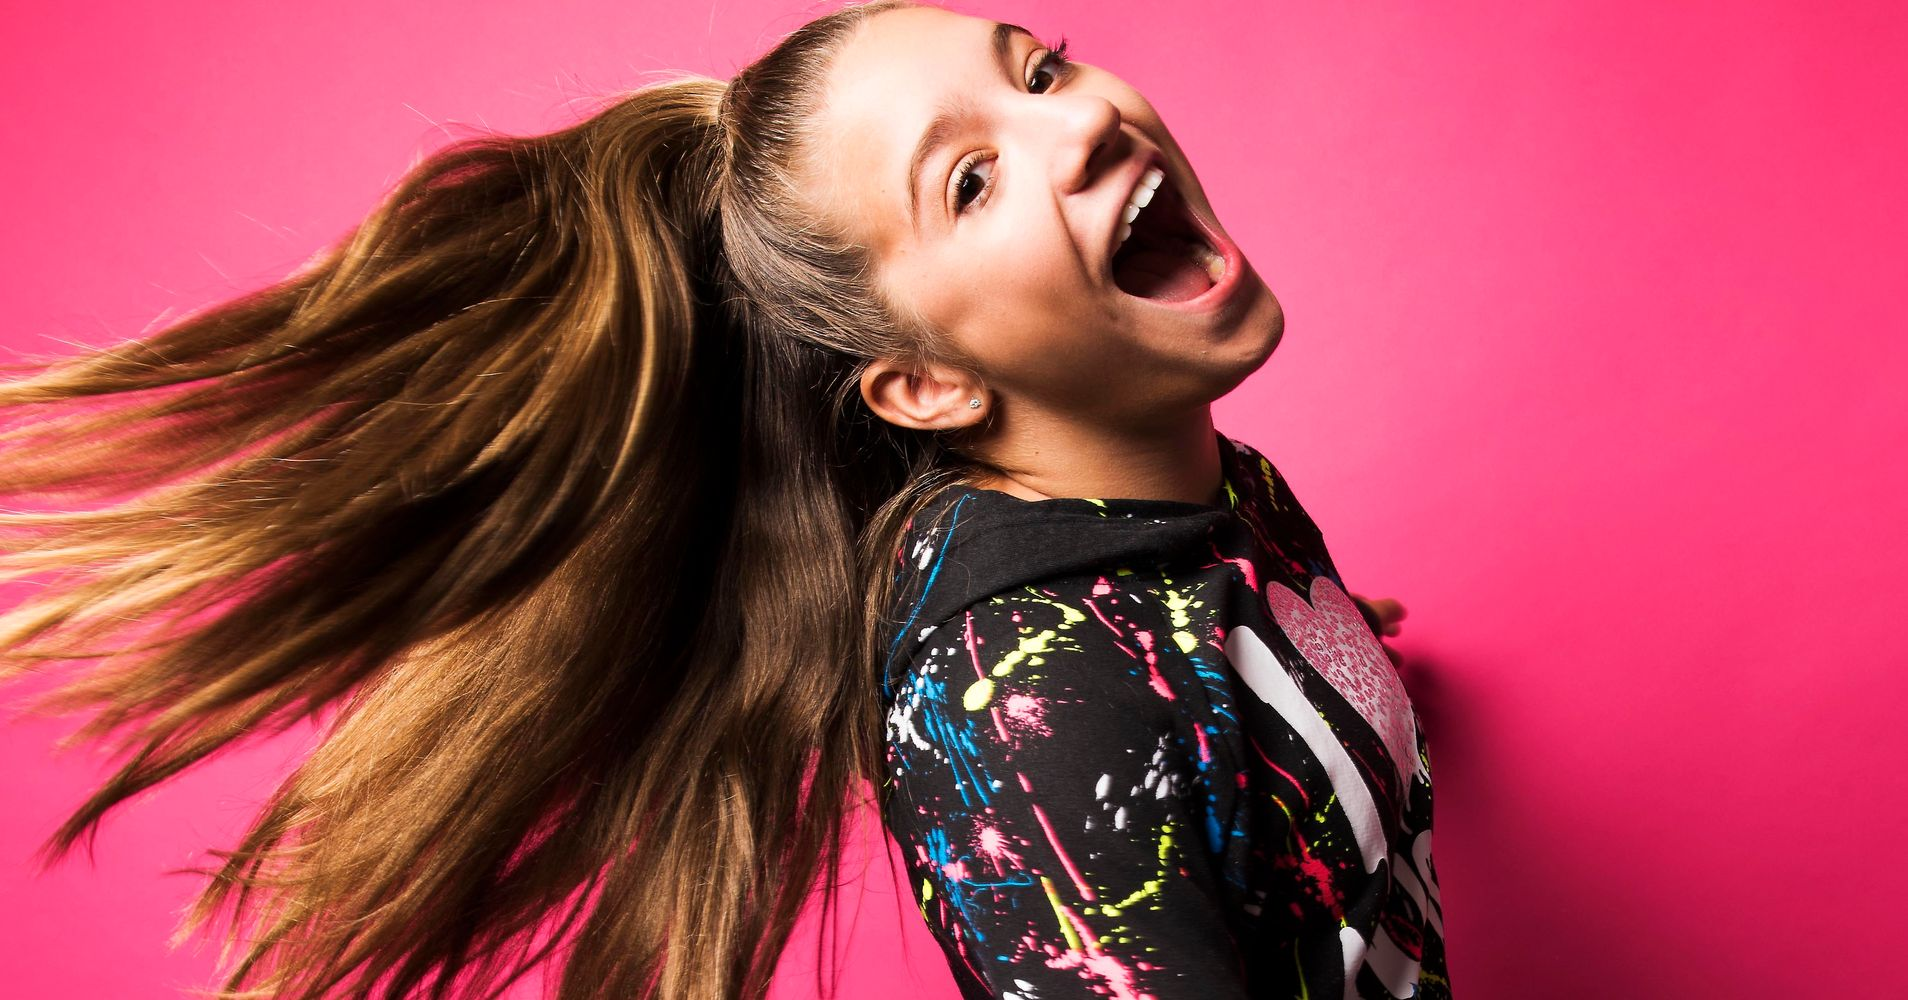 Mackenzie Ziegler Dishes On Her New Music And Being A Musical.ly Star